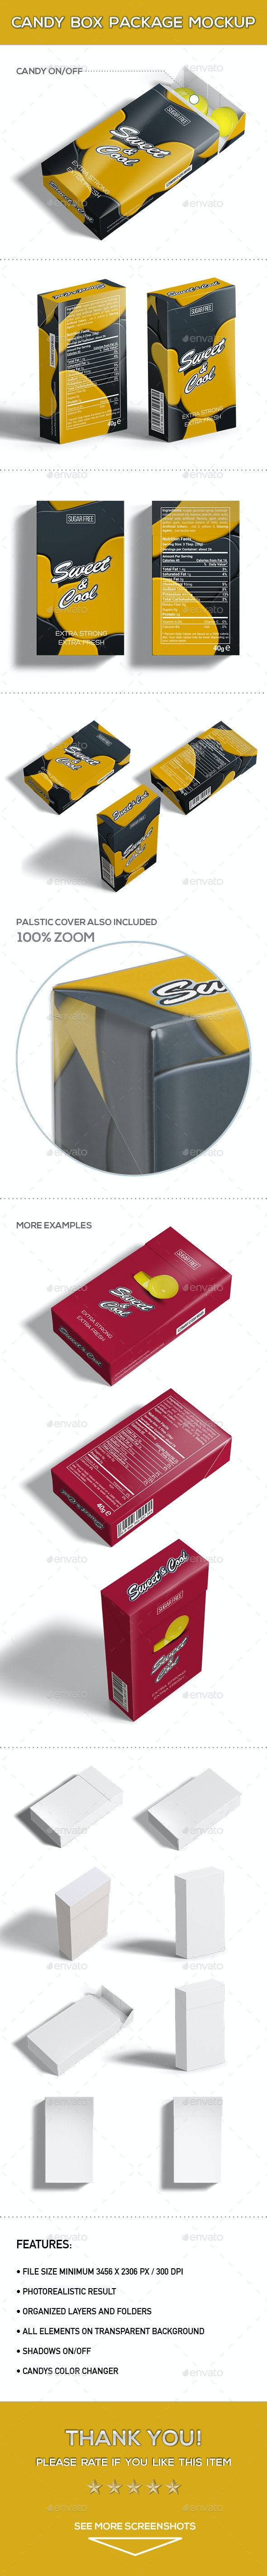 Candy Box Package Mock-Up - Product Mock-Ups Graphics